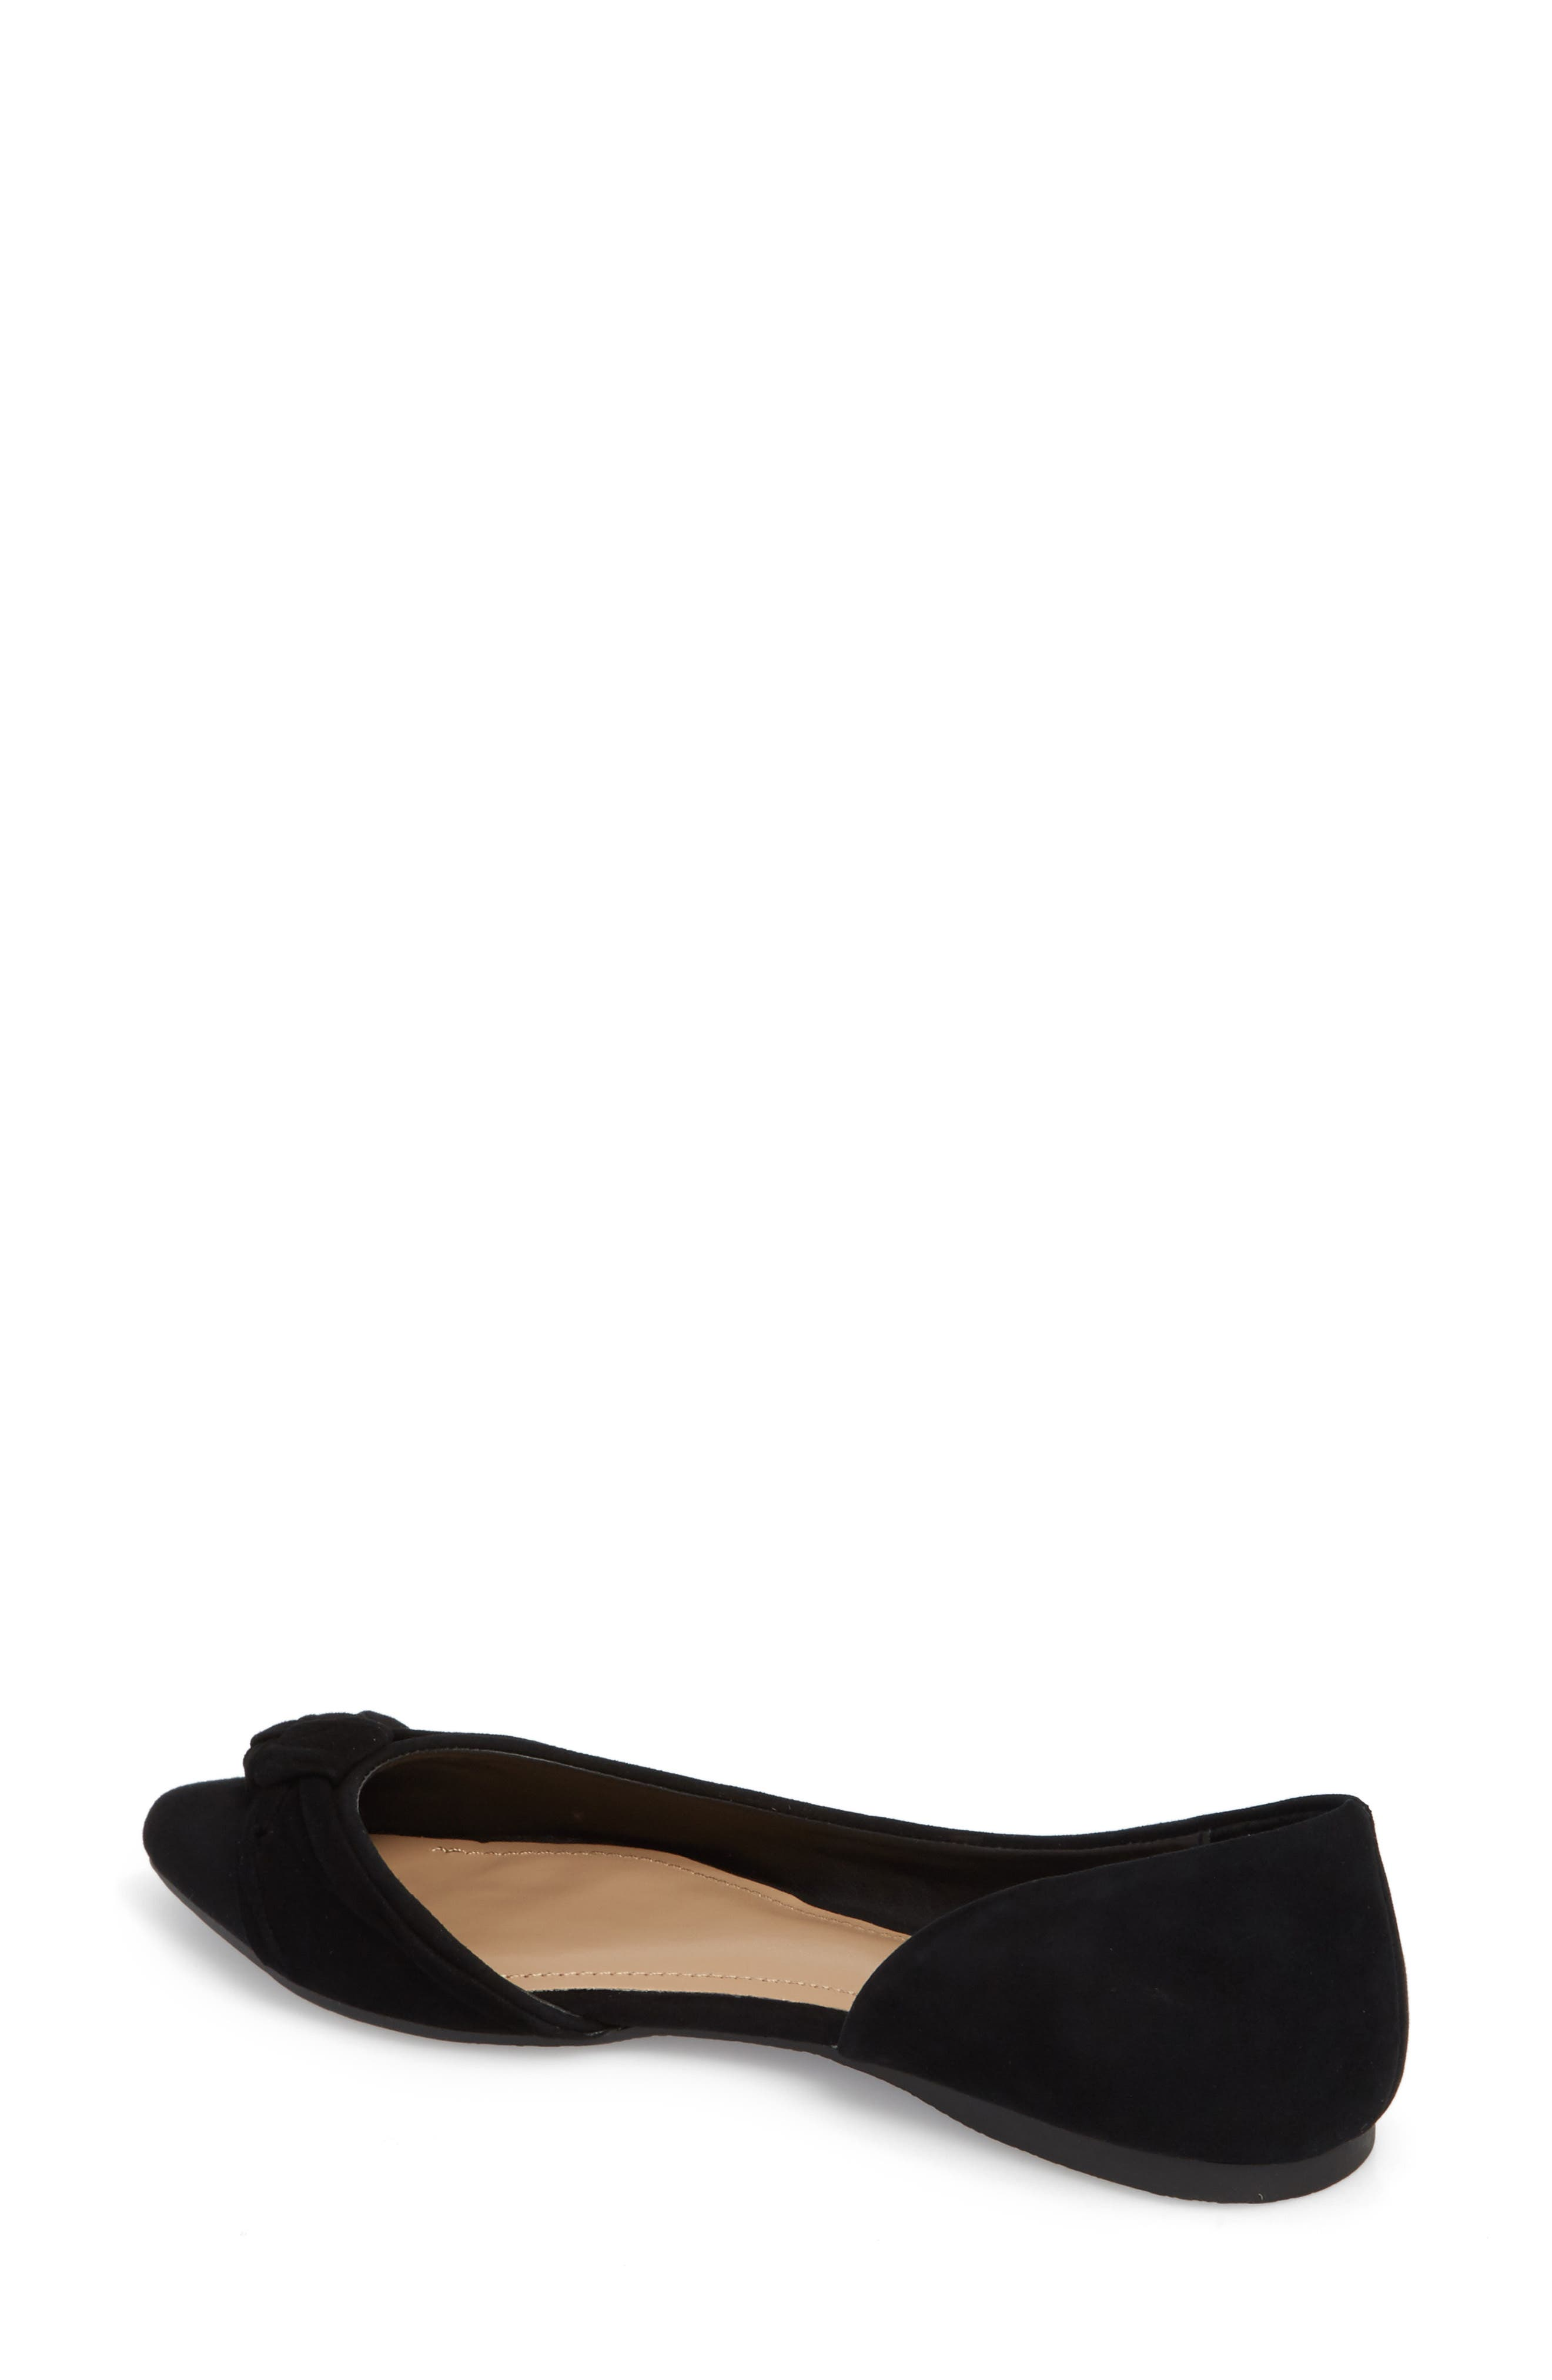 STEVE MADDEN,                             Enchant Flat,                             Alternate thumbnail 2, color,                             006